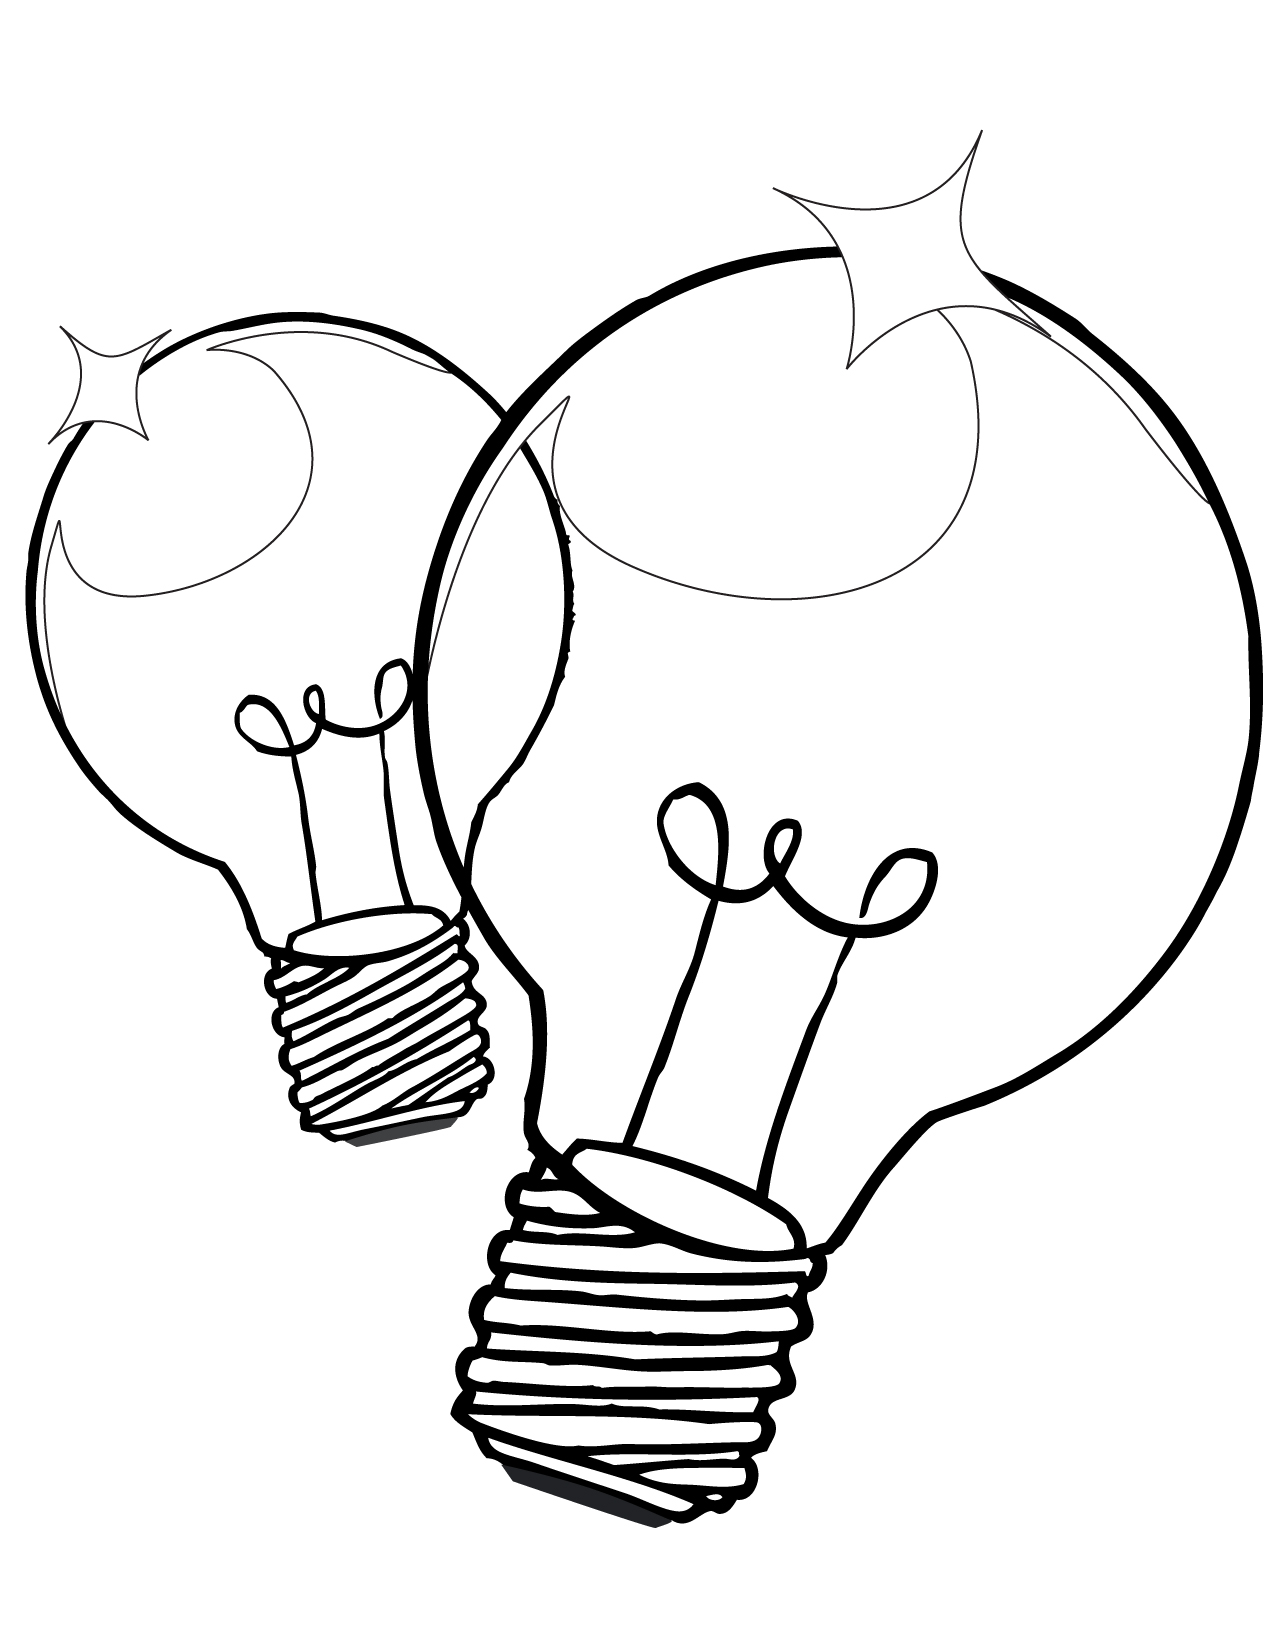 christmas tree light bulb coloring pages | Christmas Light Bulb Coloring Page | Clipart Panda - Free ...